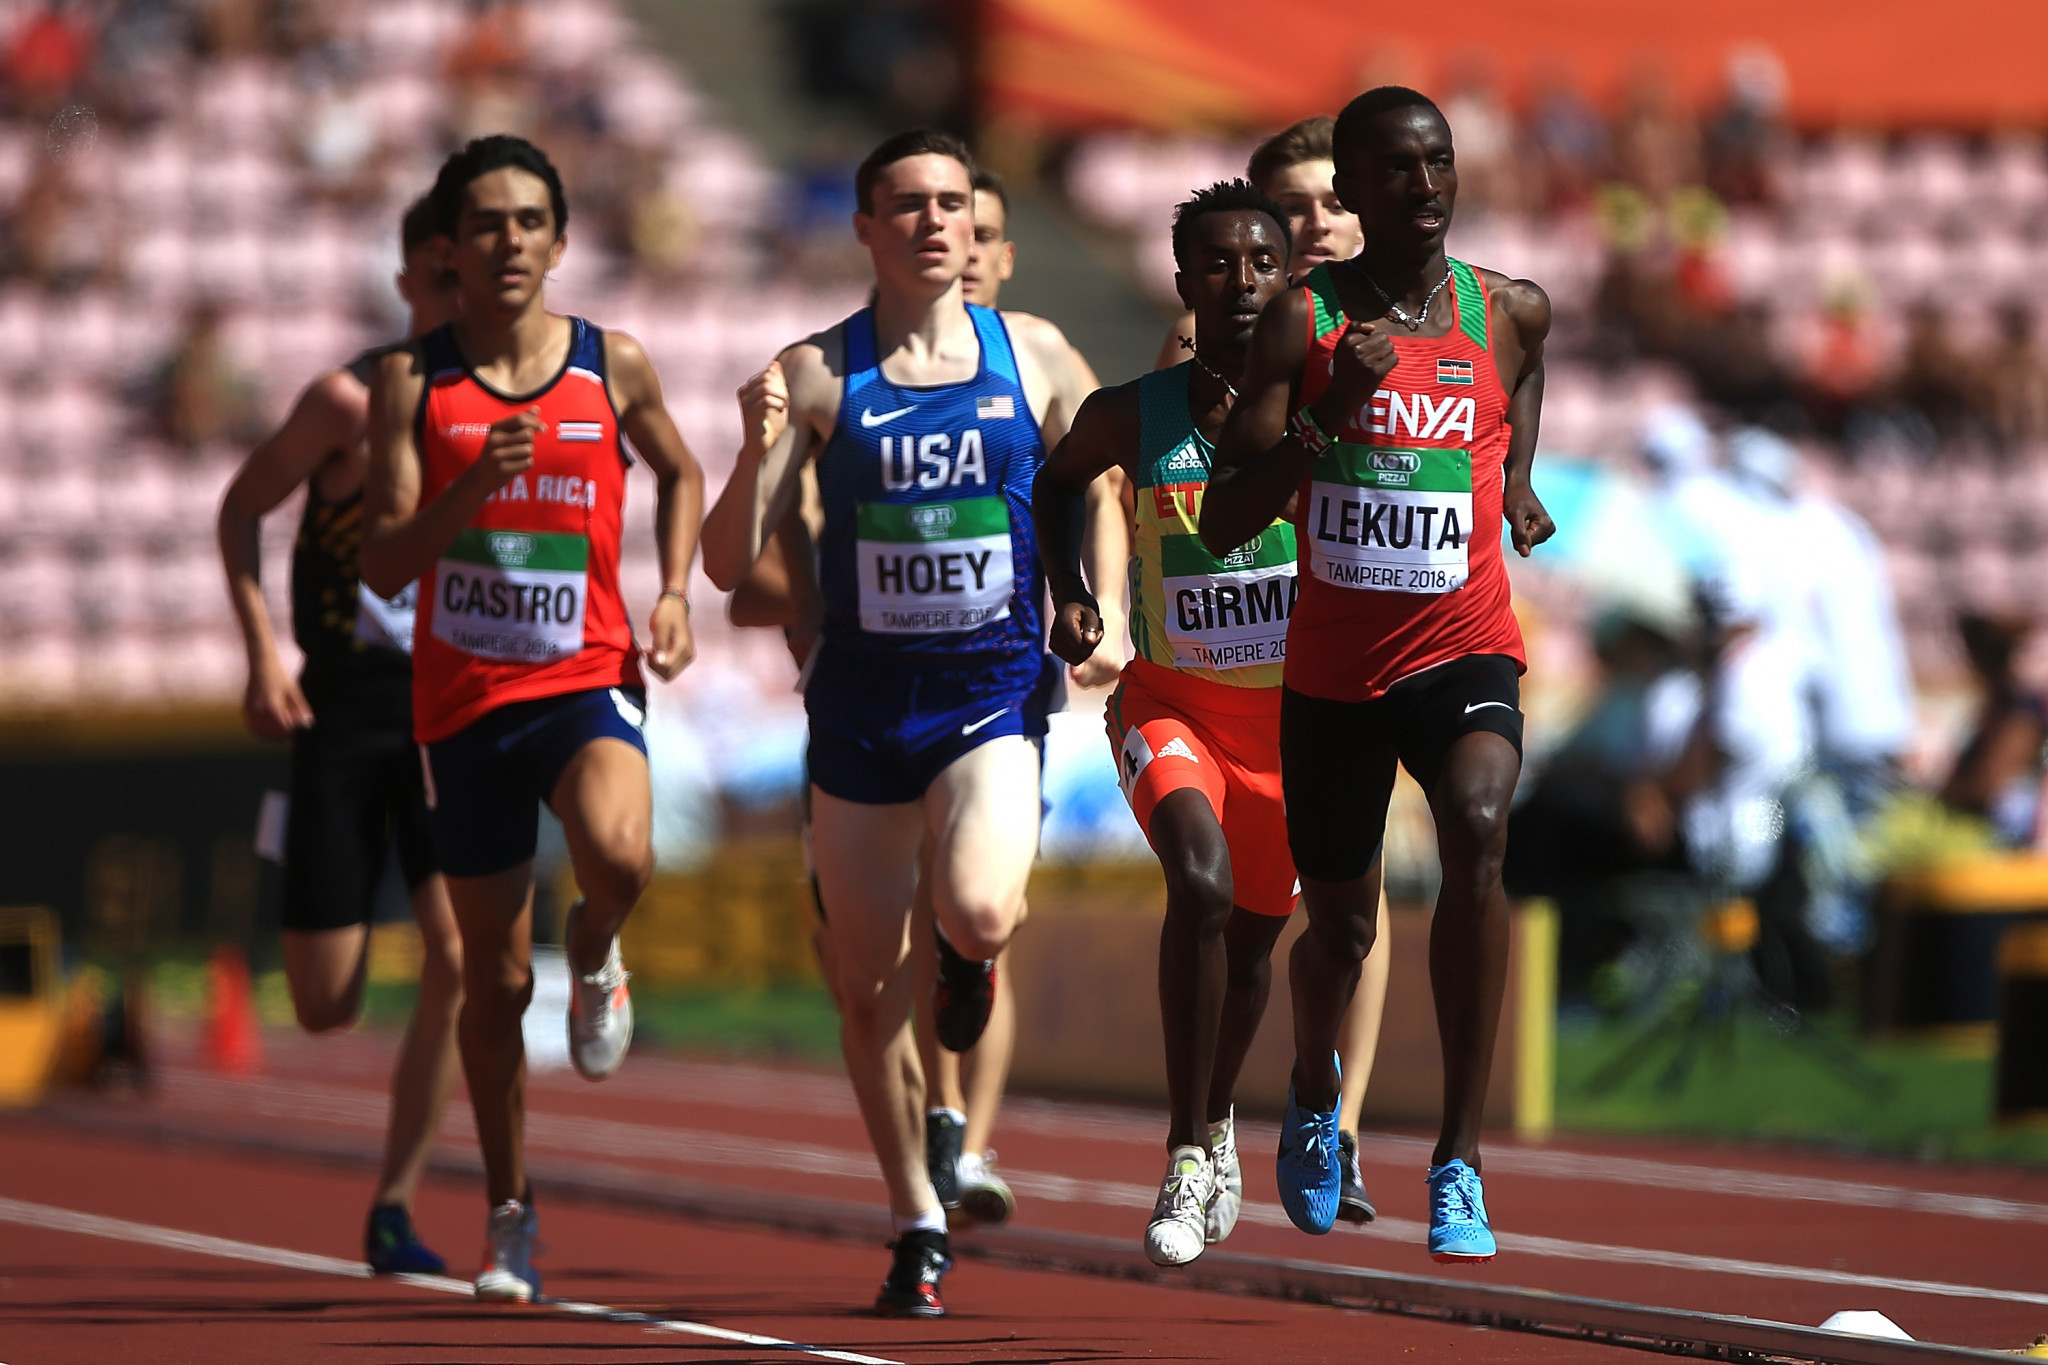 Kenya finish top of the medals table at IAAF World Under-20 Championships in Tampere